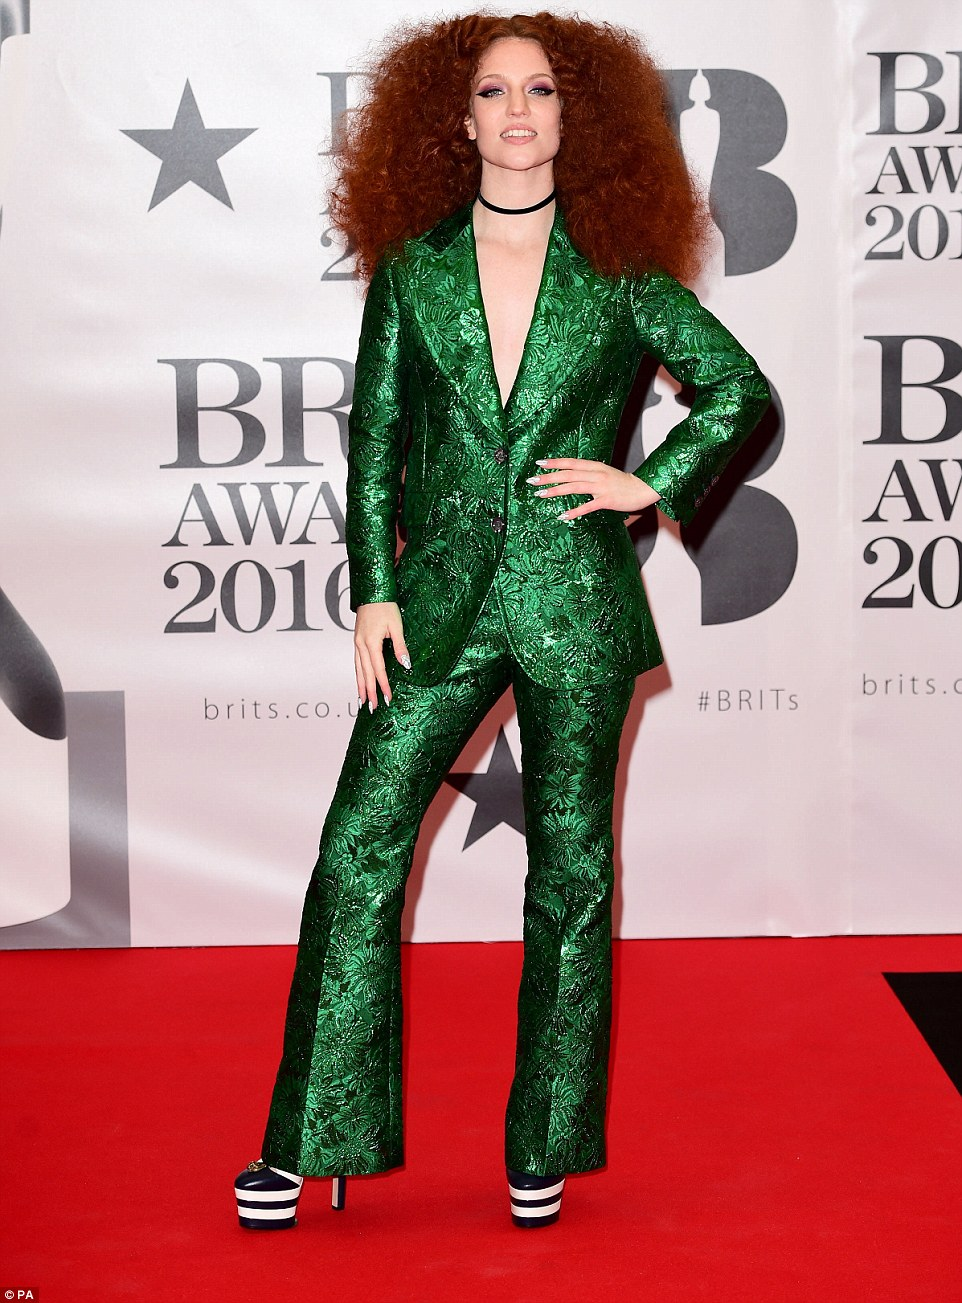 3184C38100000578-3462539-The_annual_music_awards_the_Brits_are_taking_place_this_evening_-m-15_1456341331599